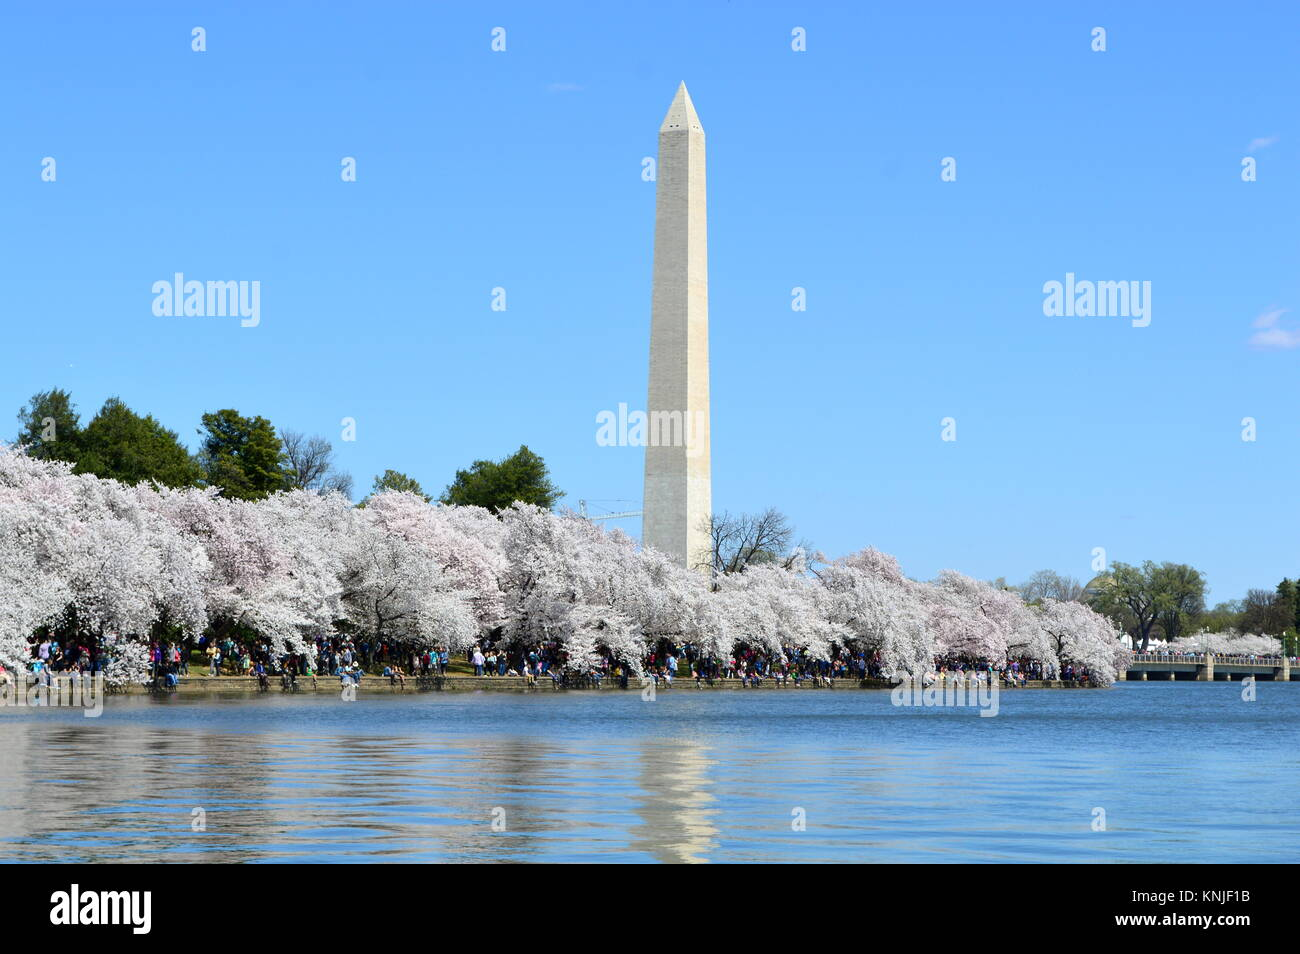 Washington DC, Columbia, Stati Uniti d'America - 11 Aprile 2015: Washington DC-monumento-Cherry Blossom Immagini Stock